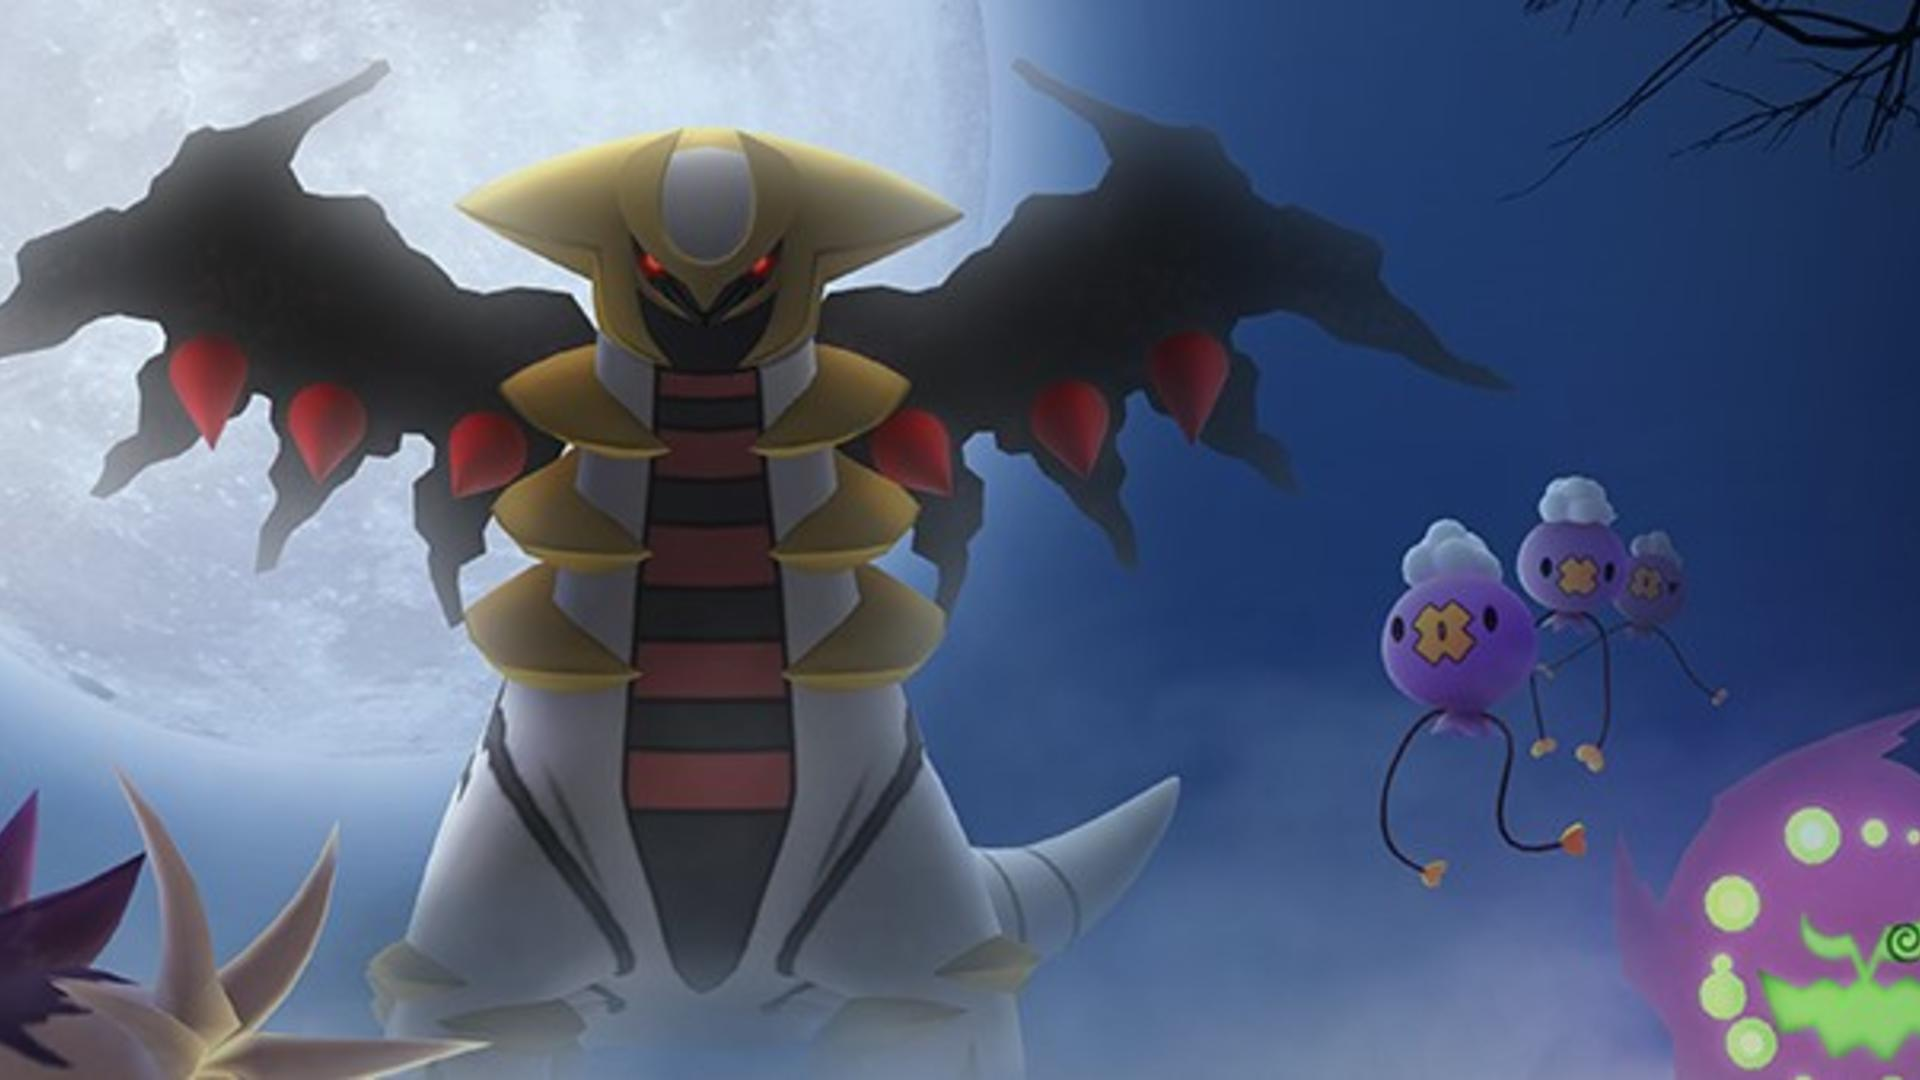 Altered Forme Giratina is returning to Pokémon Go raids with Shiny form